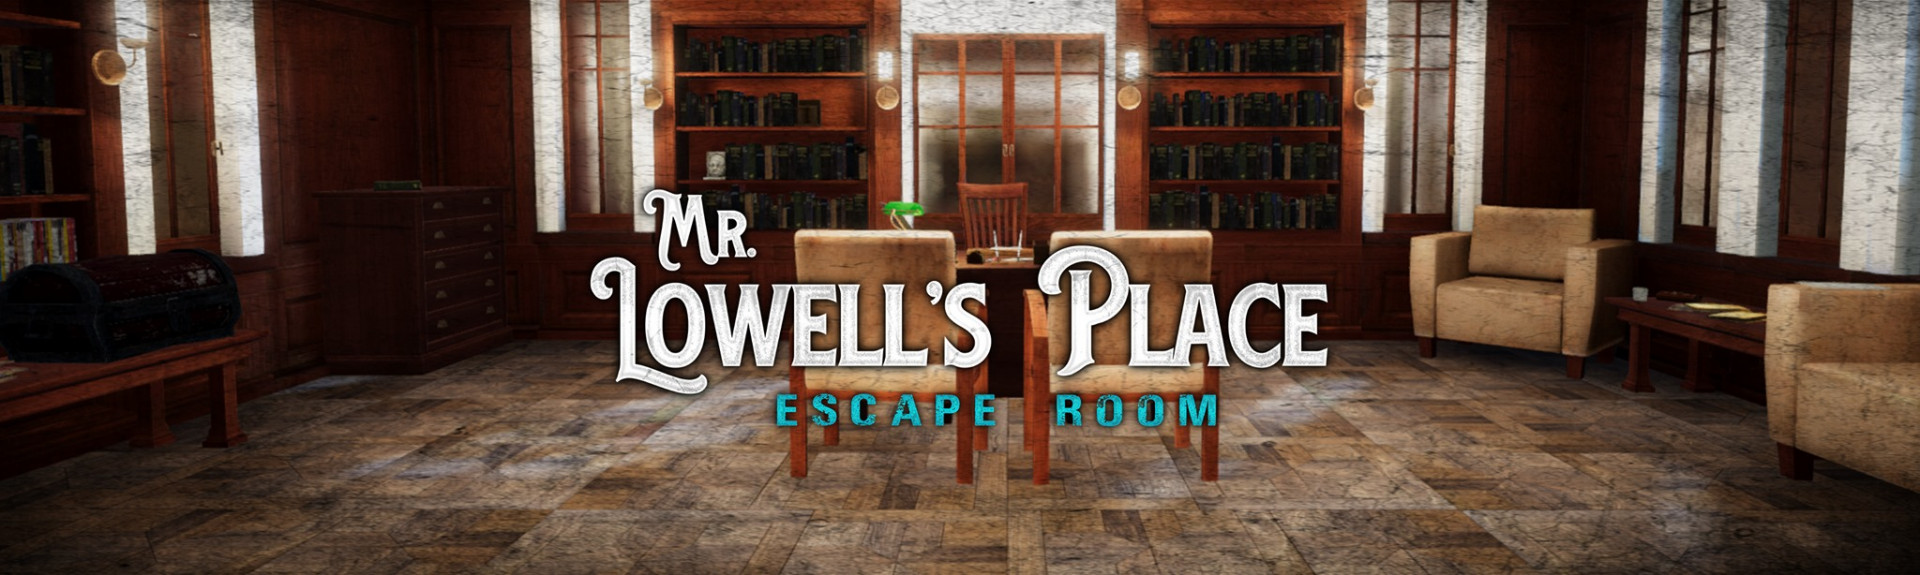 Mr. Lowell's Place - Escape Room